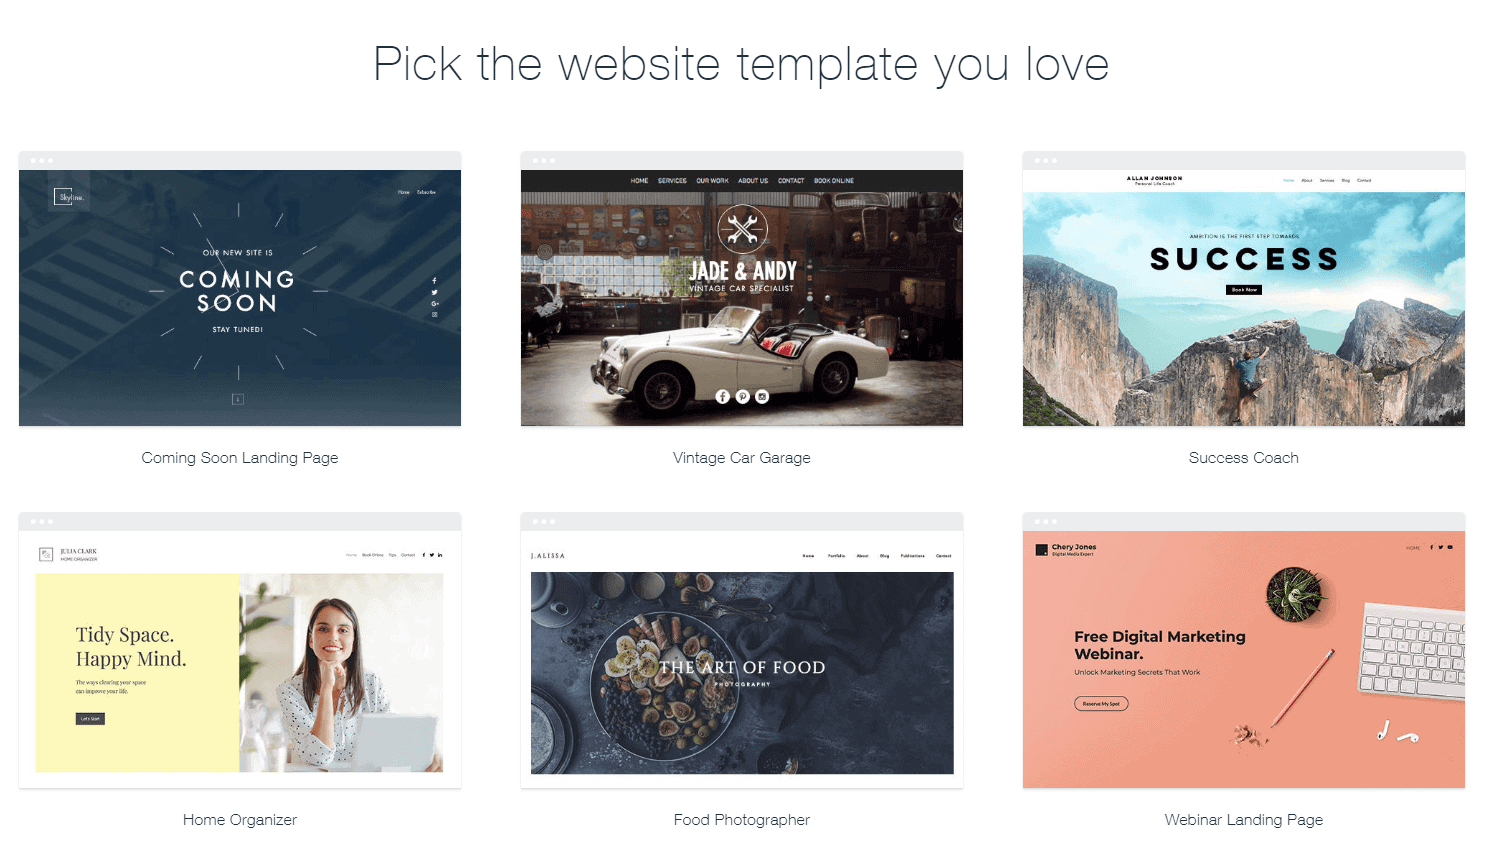 Pick the Wix Website template you love